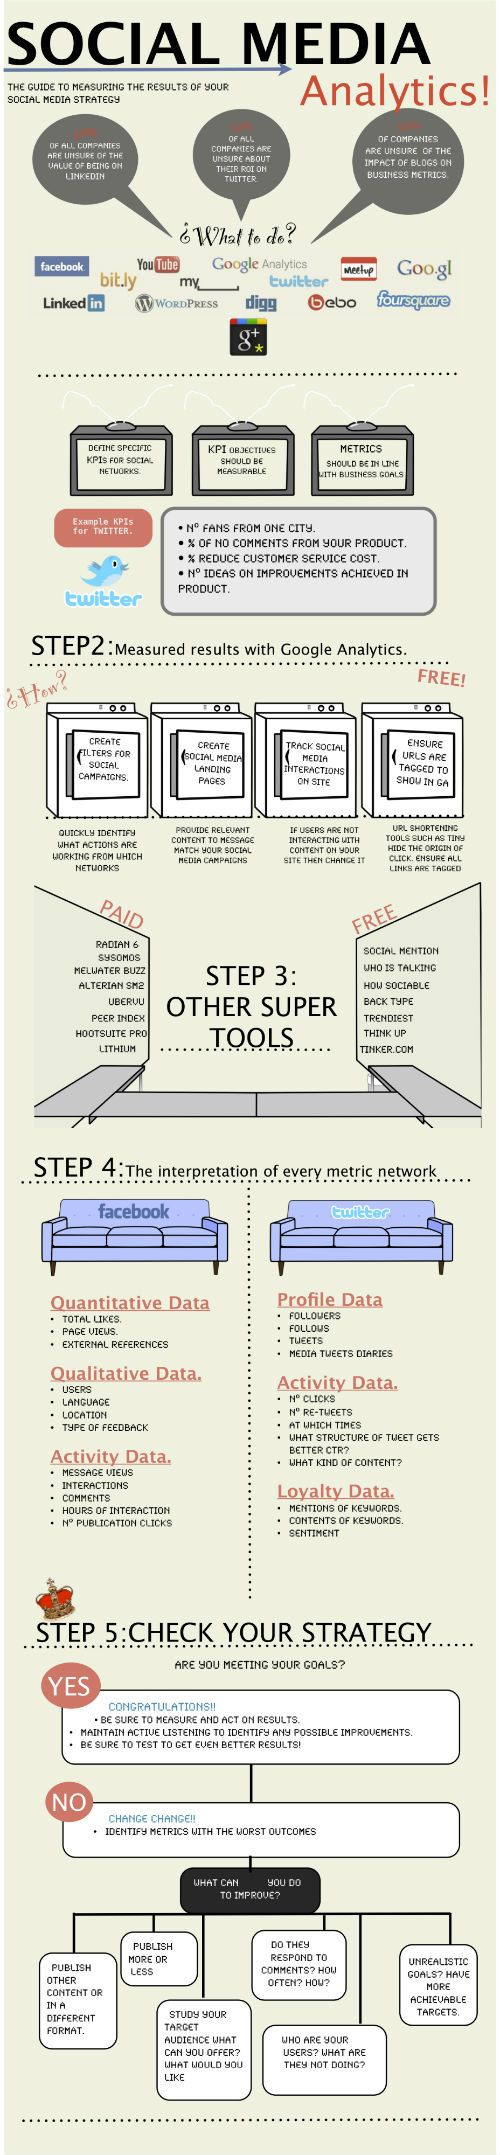 Social-Media-Analytics - The guide to measuring the results of your social media strategy- Infographic